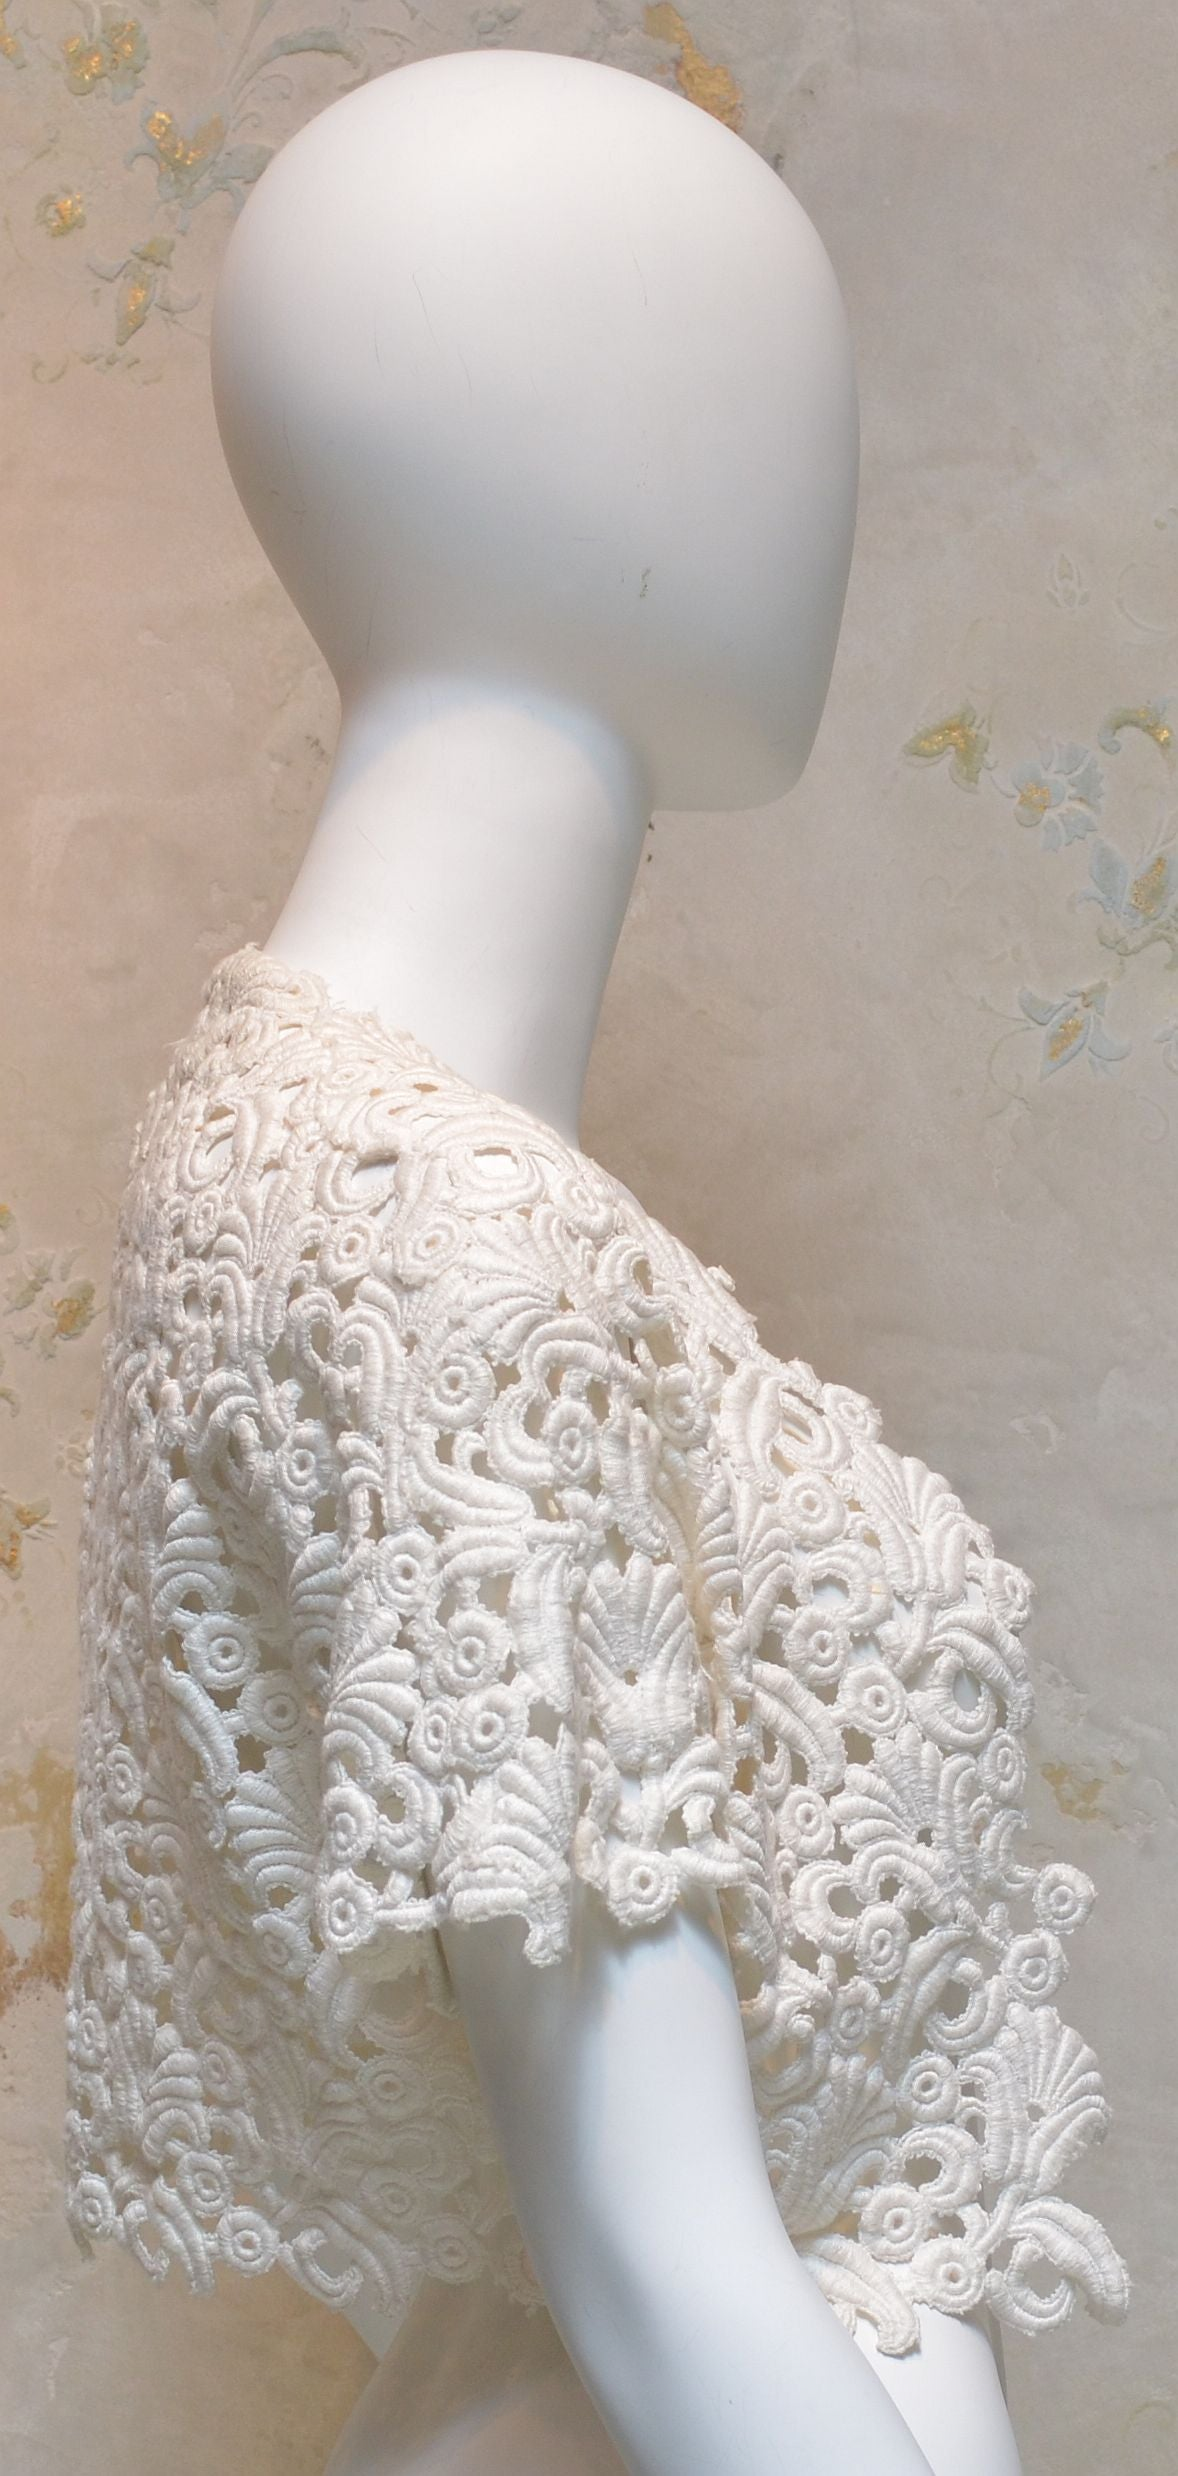 1960's Vintage Chanel Amen Wardy Off White Cream Ivory Lace Bolero Shrug 3